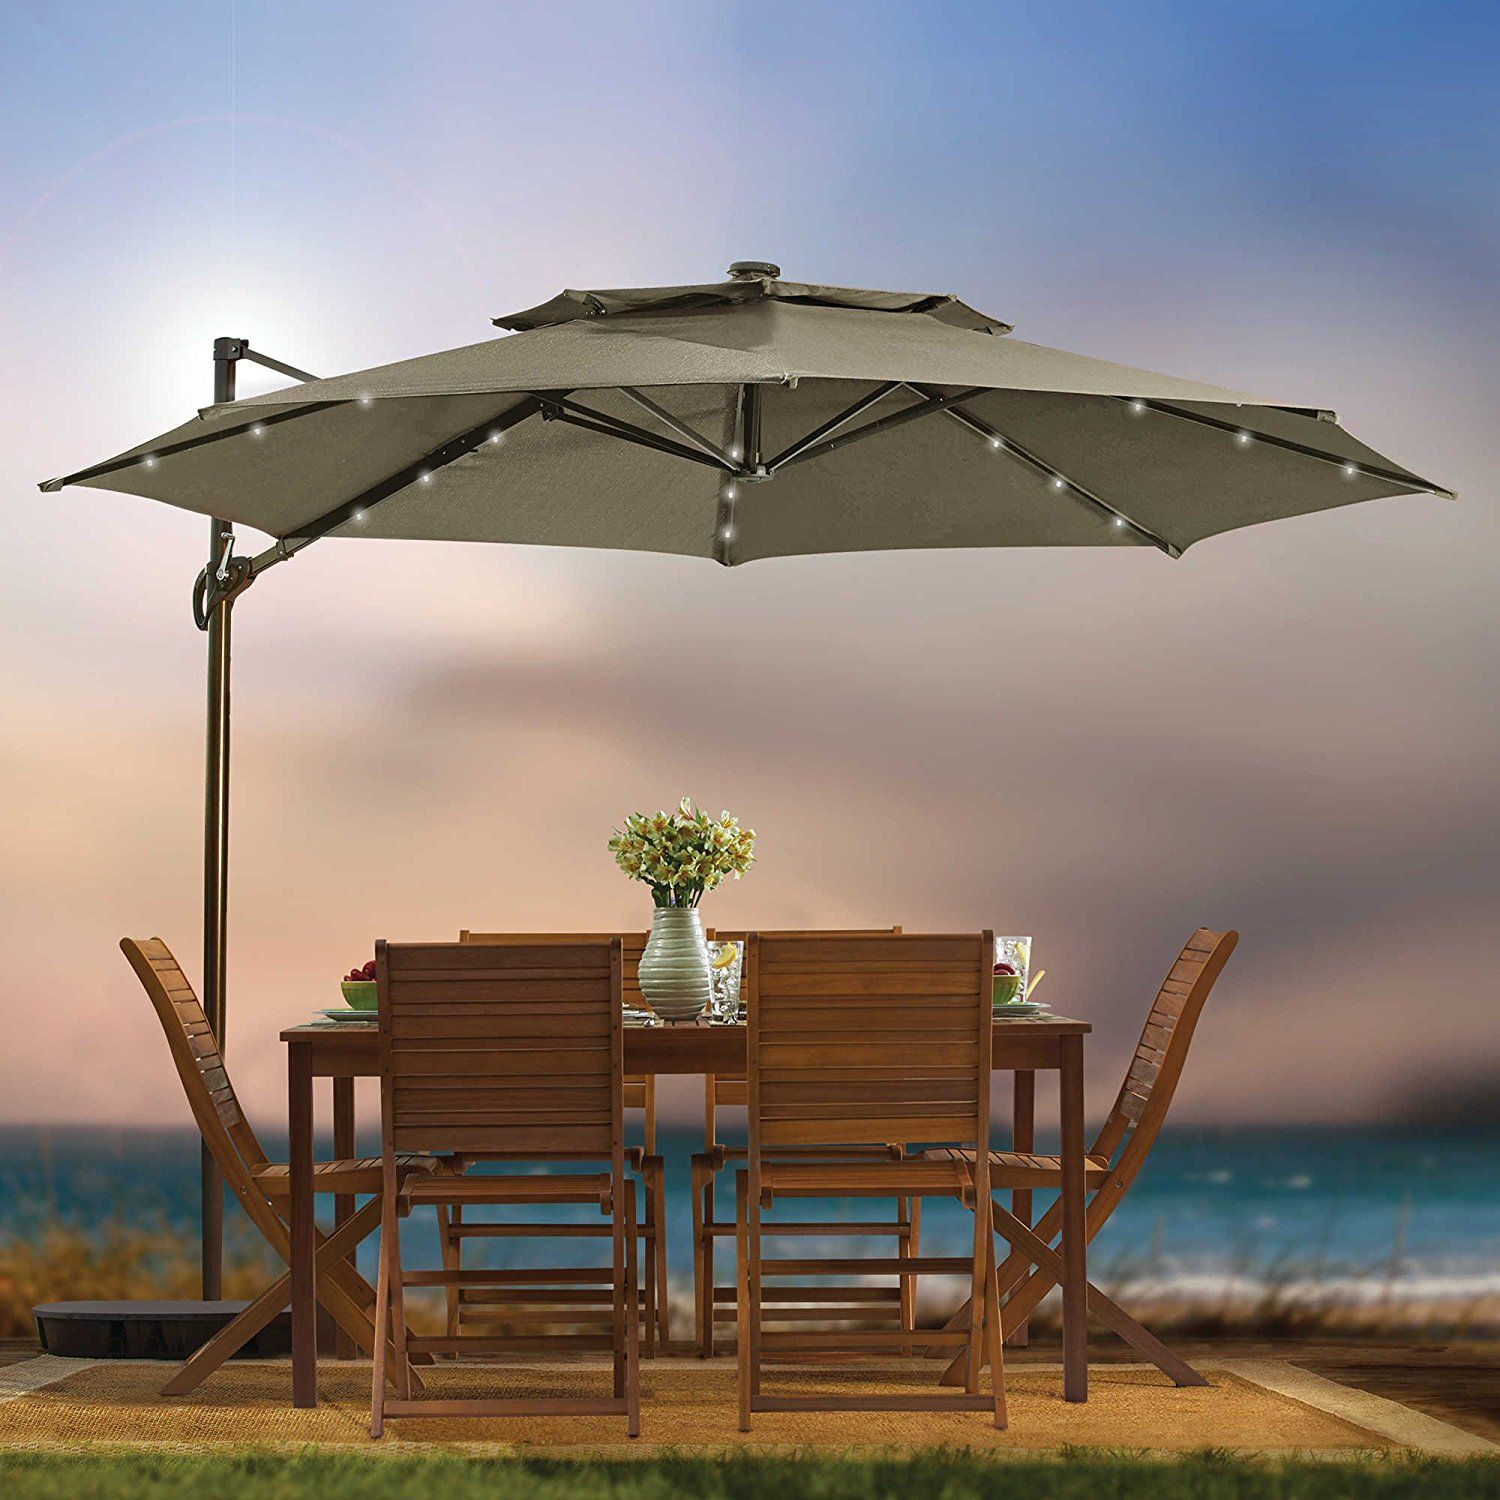 Amazon Com Destination Summer 11 Foot Round Solar Led Adjustable Cantilever Outdoor Patio Umbrella With Base And Patio Umbrellas Patio Patio Umbrella Lights